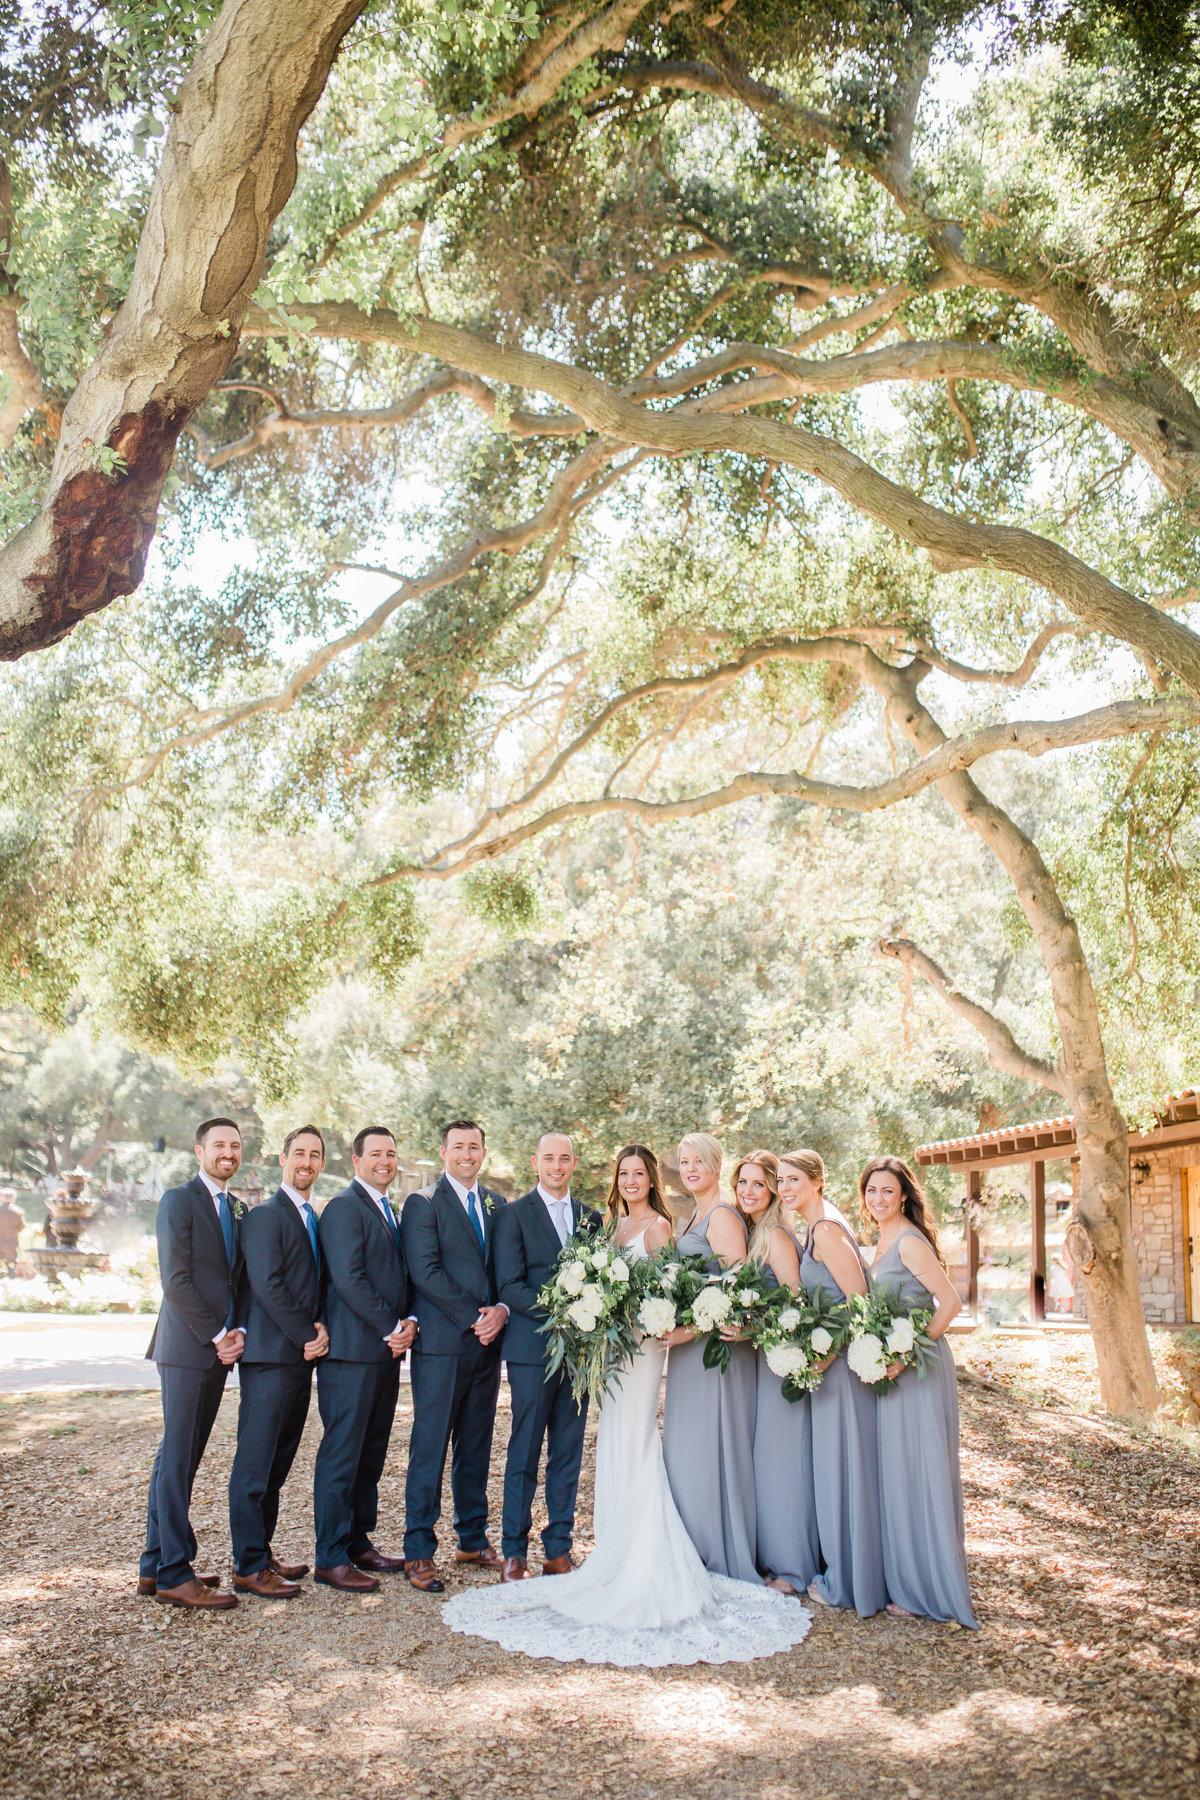 Paige & Thomas are Married| Circle Oak Ranch Wedding | Katie Schoepflin Photography153